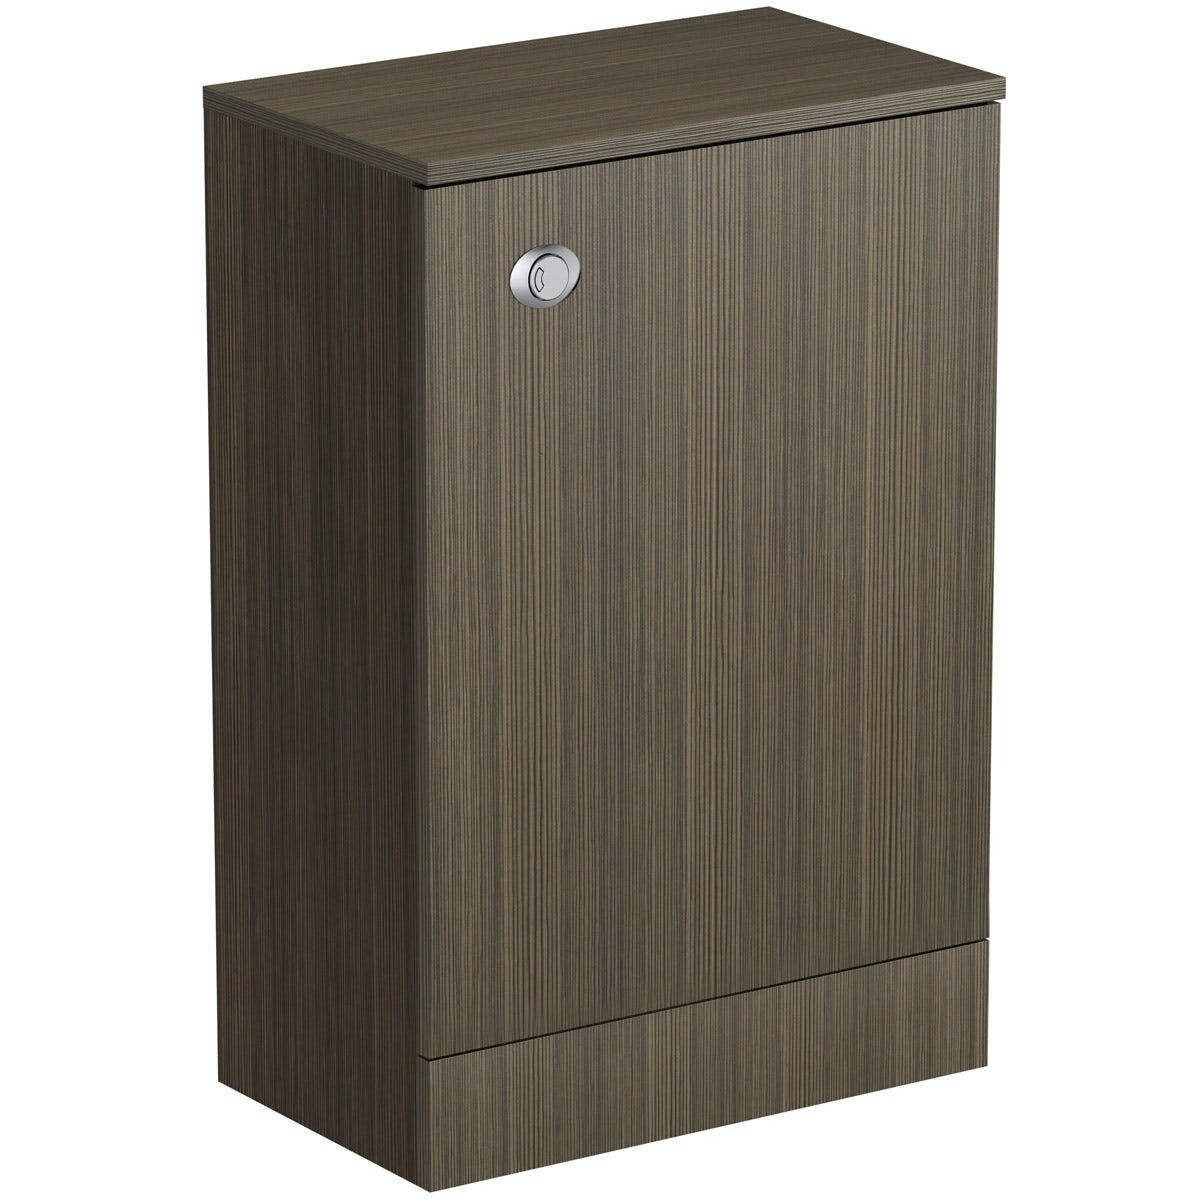 Orchard Wye walnut back to wall toilet unit